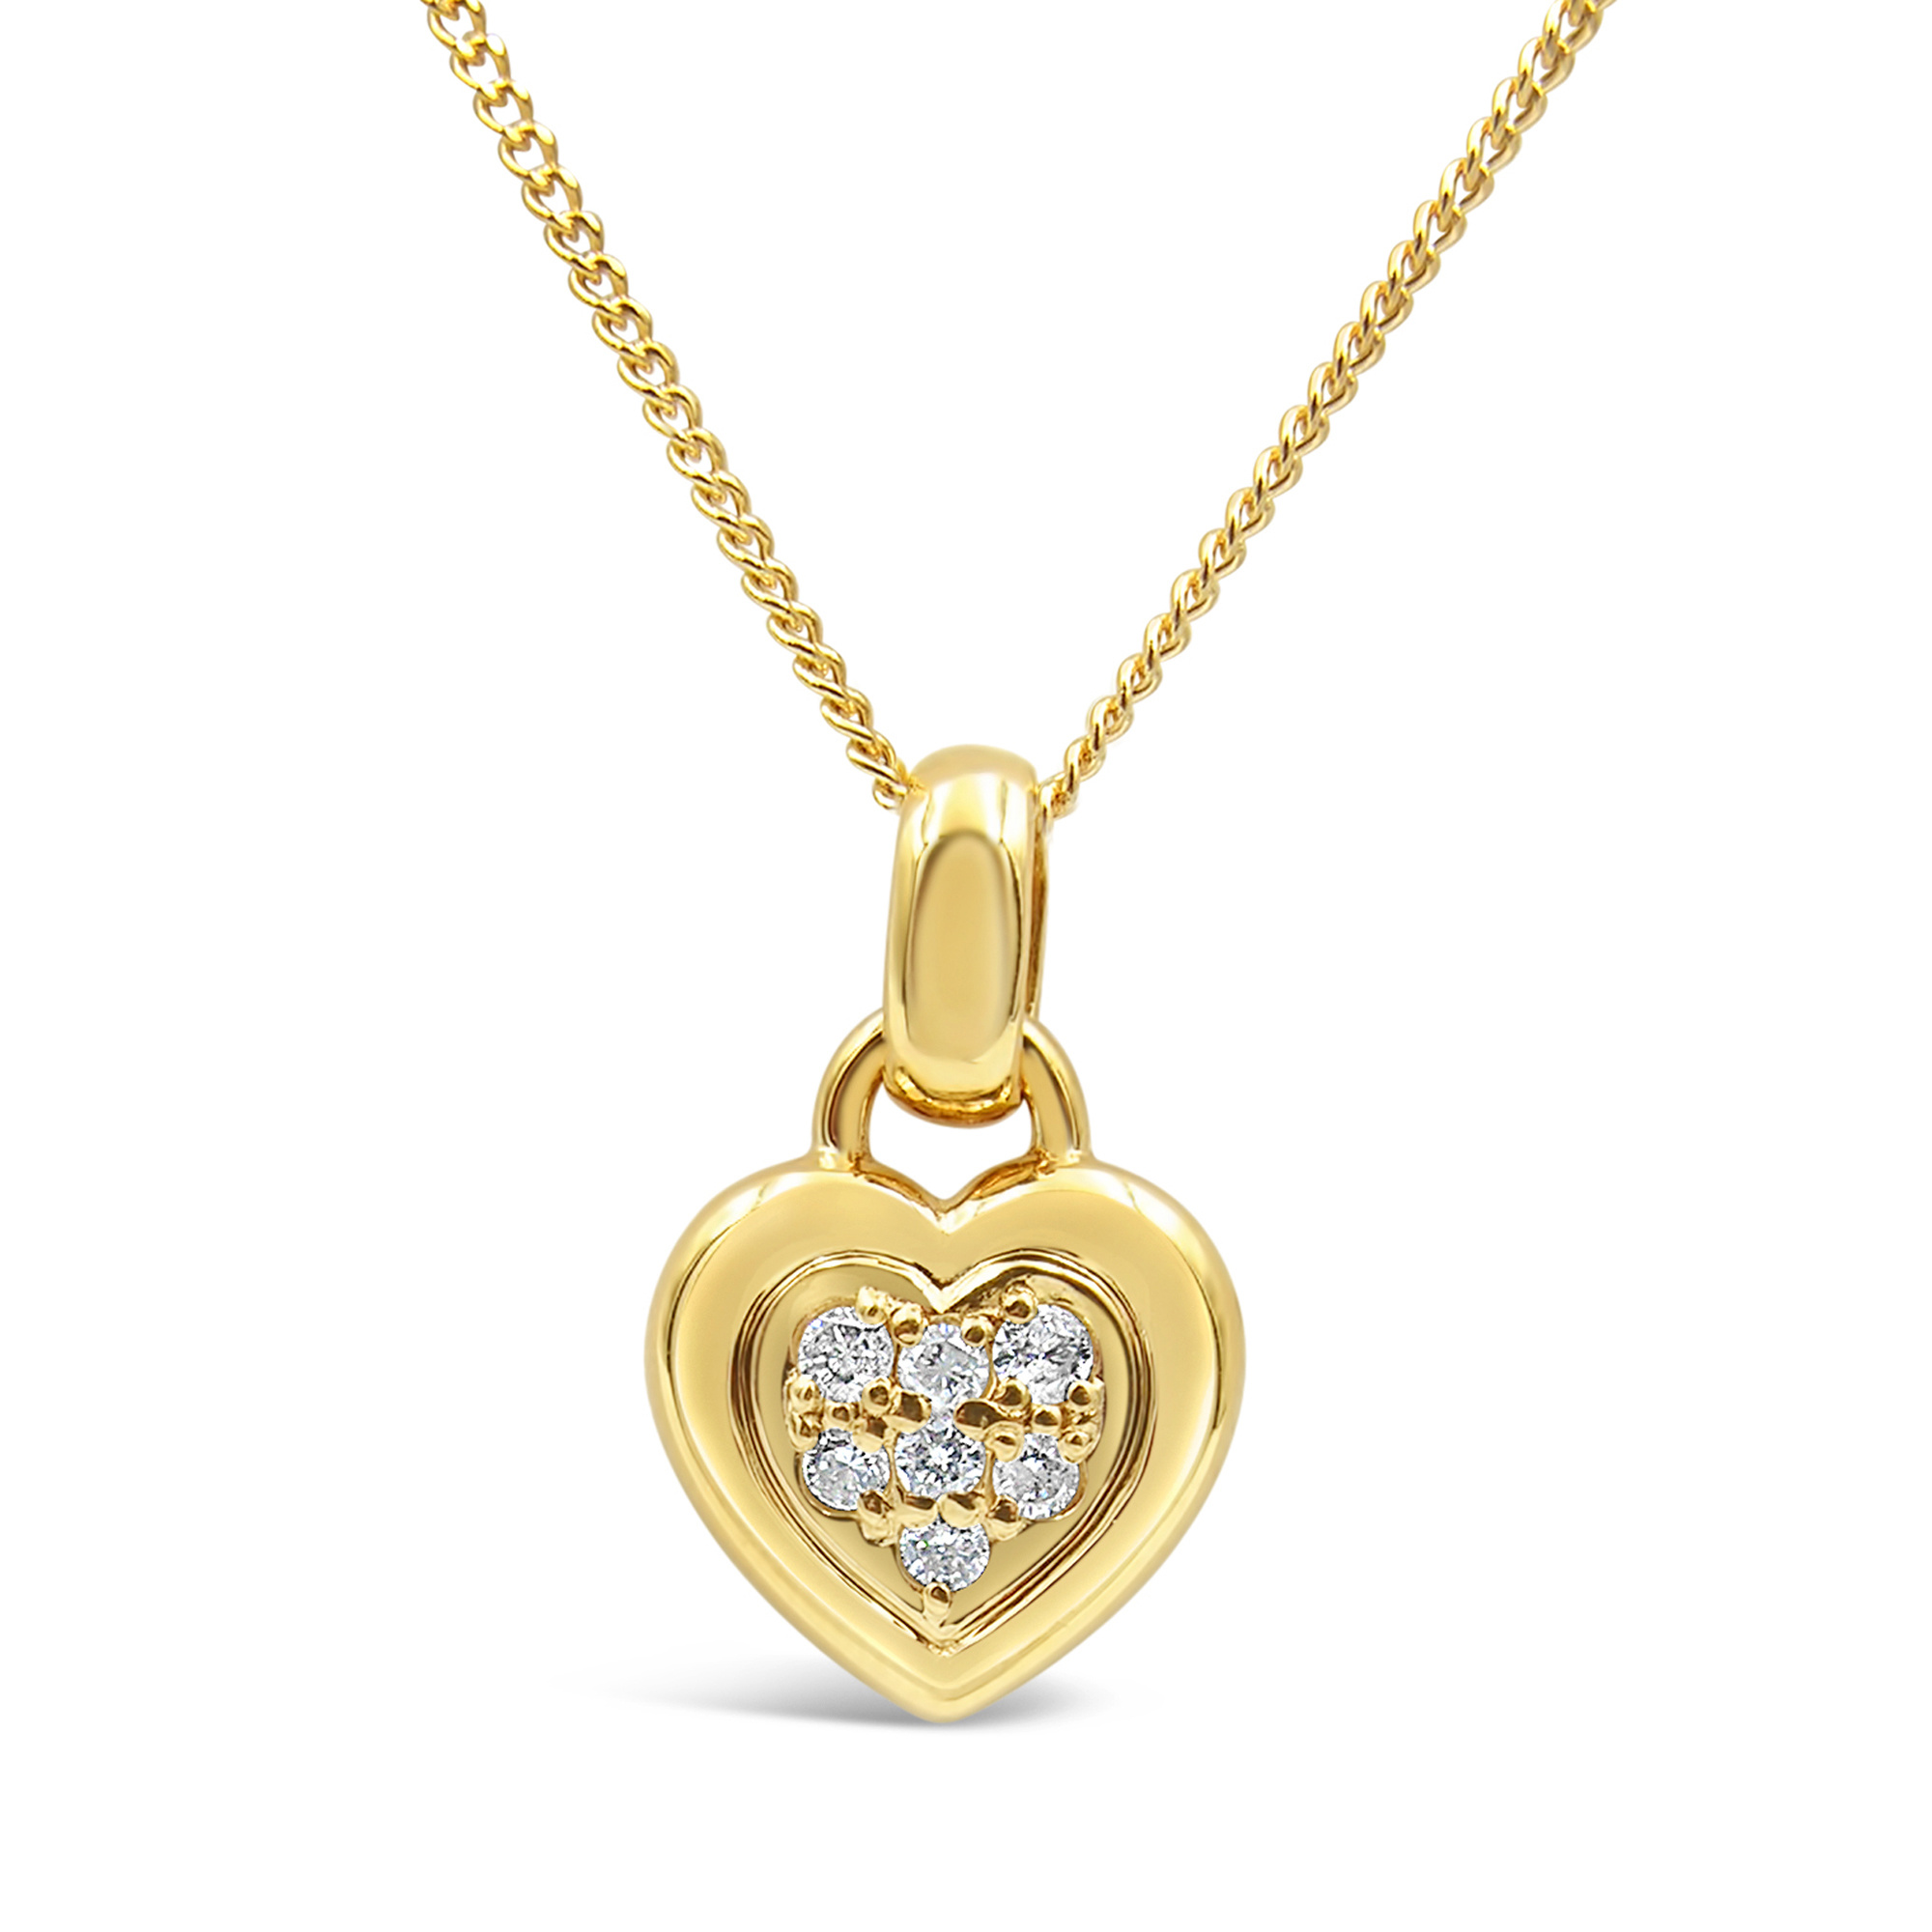 18kt yellow gold heart pendant with 0.15 ct diamonds